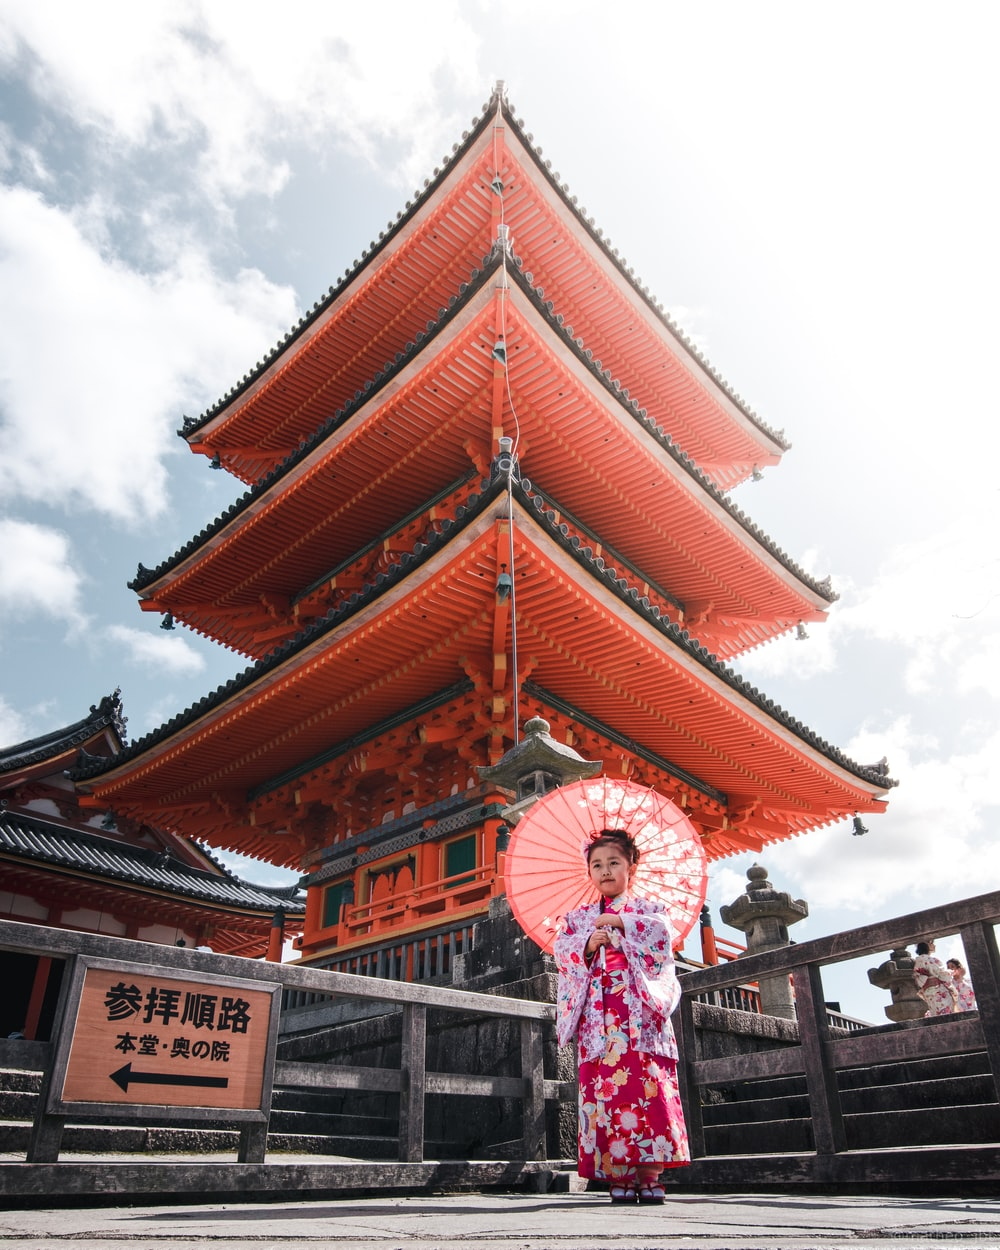 woman in pink and white floral dress standing near brown and white temple during daytime